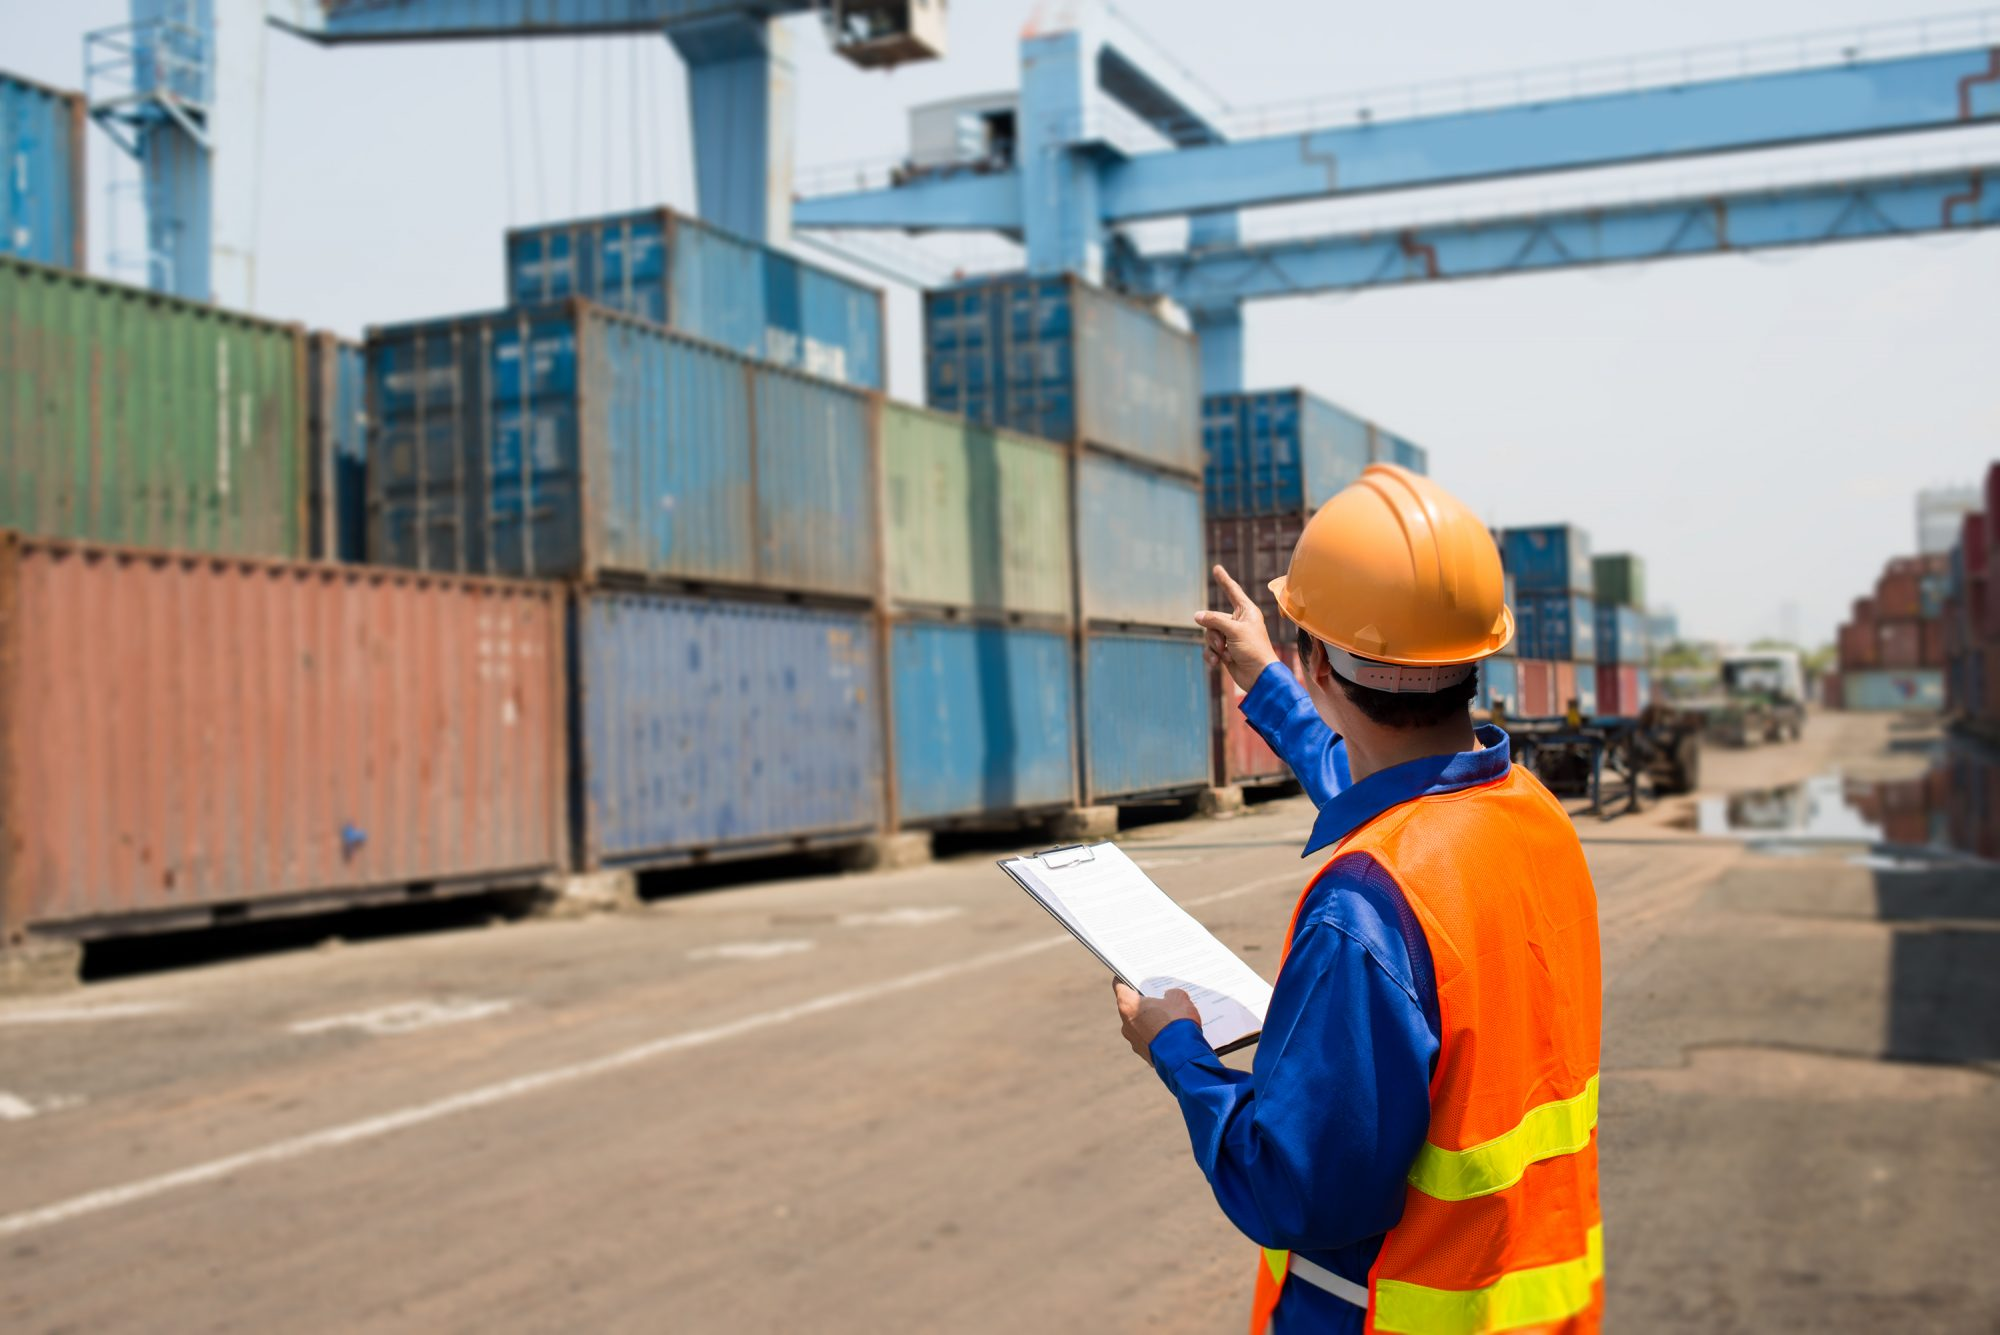 An Overview of the Longshore and Harbor Workers' Compensation Act